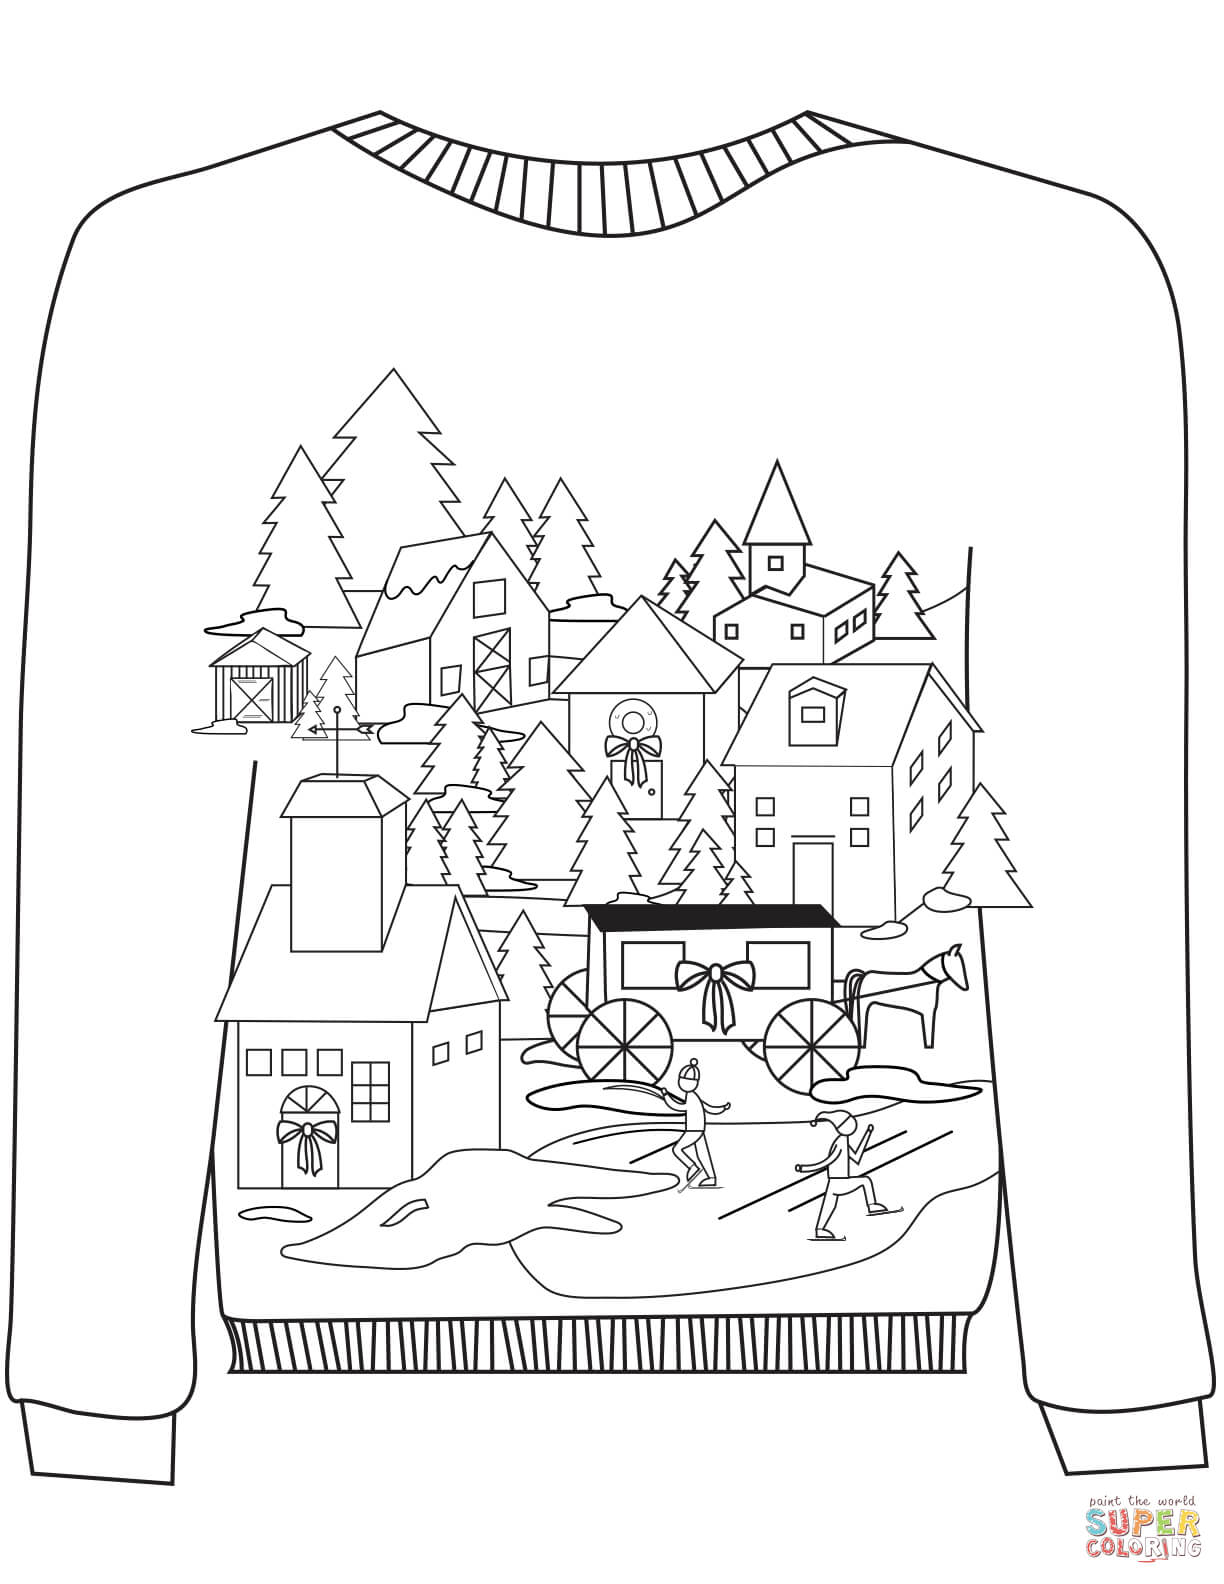 Christmas Ugly Sweater With A Village Motif Coloring Page